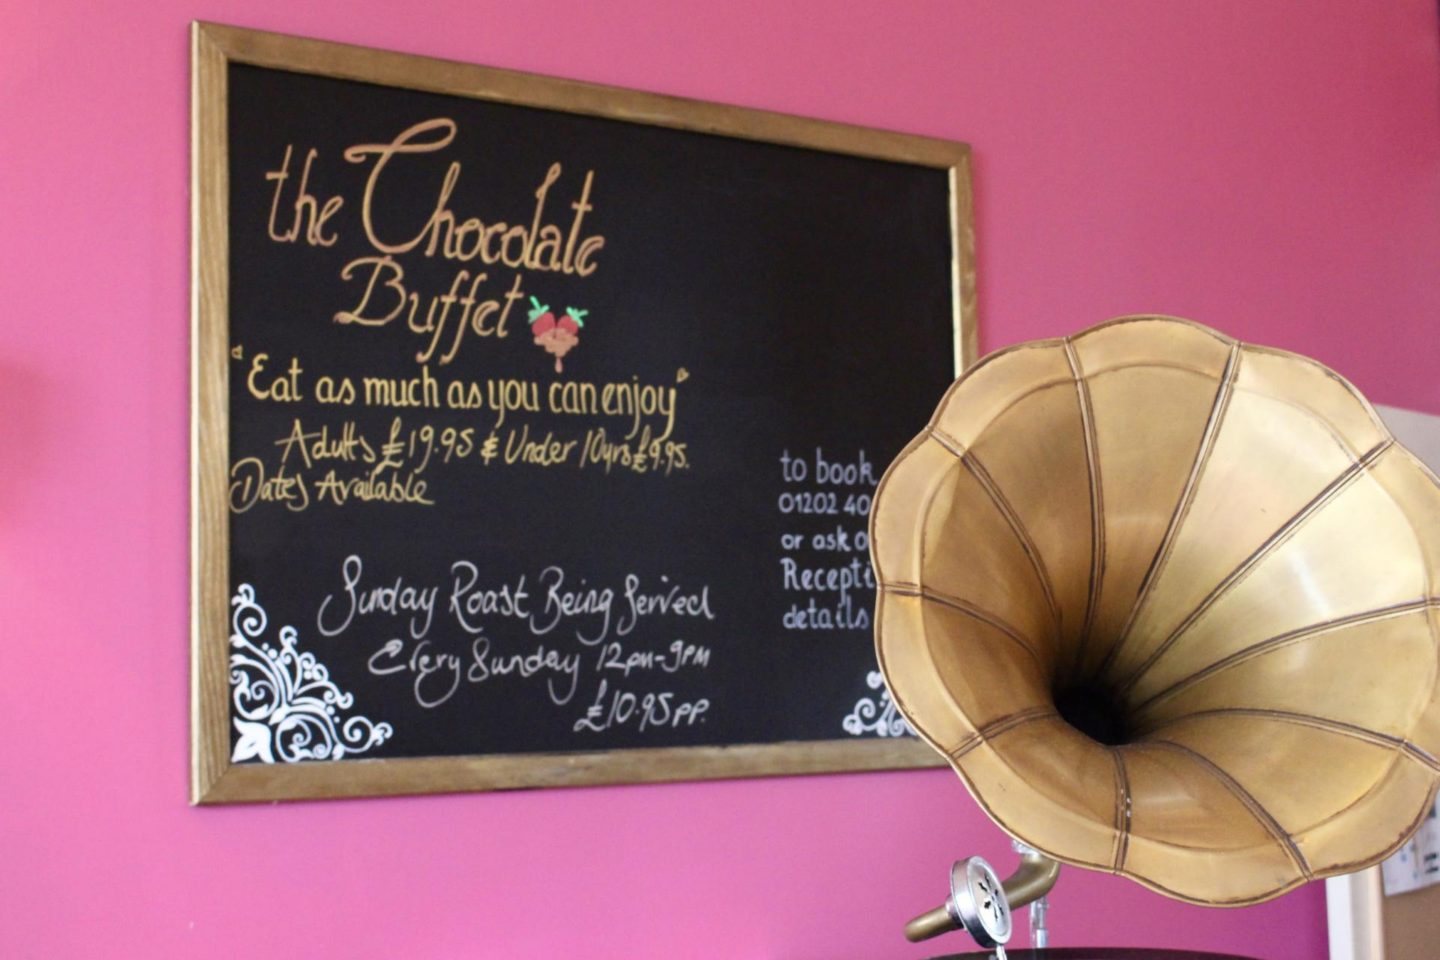 A chocolate buffet at cottonwood boutique hotel